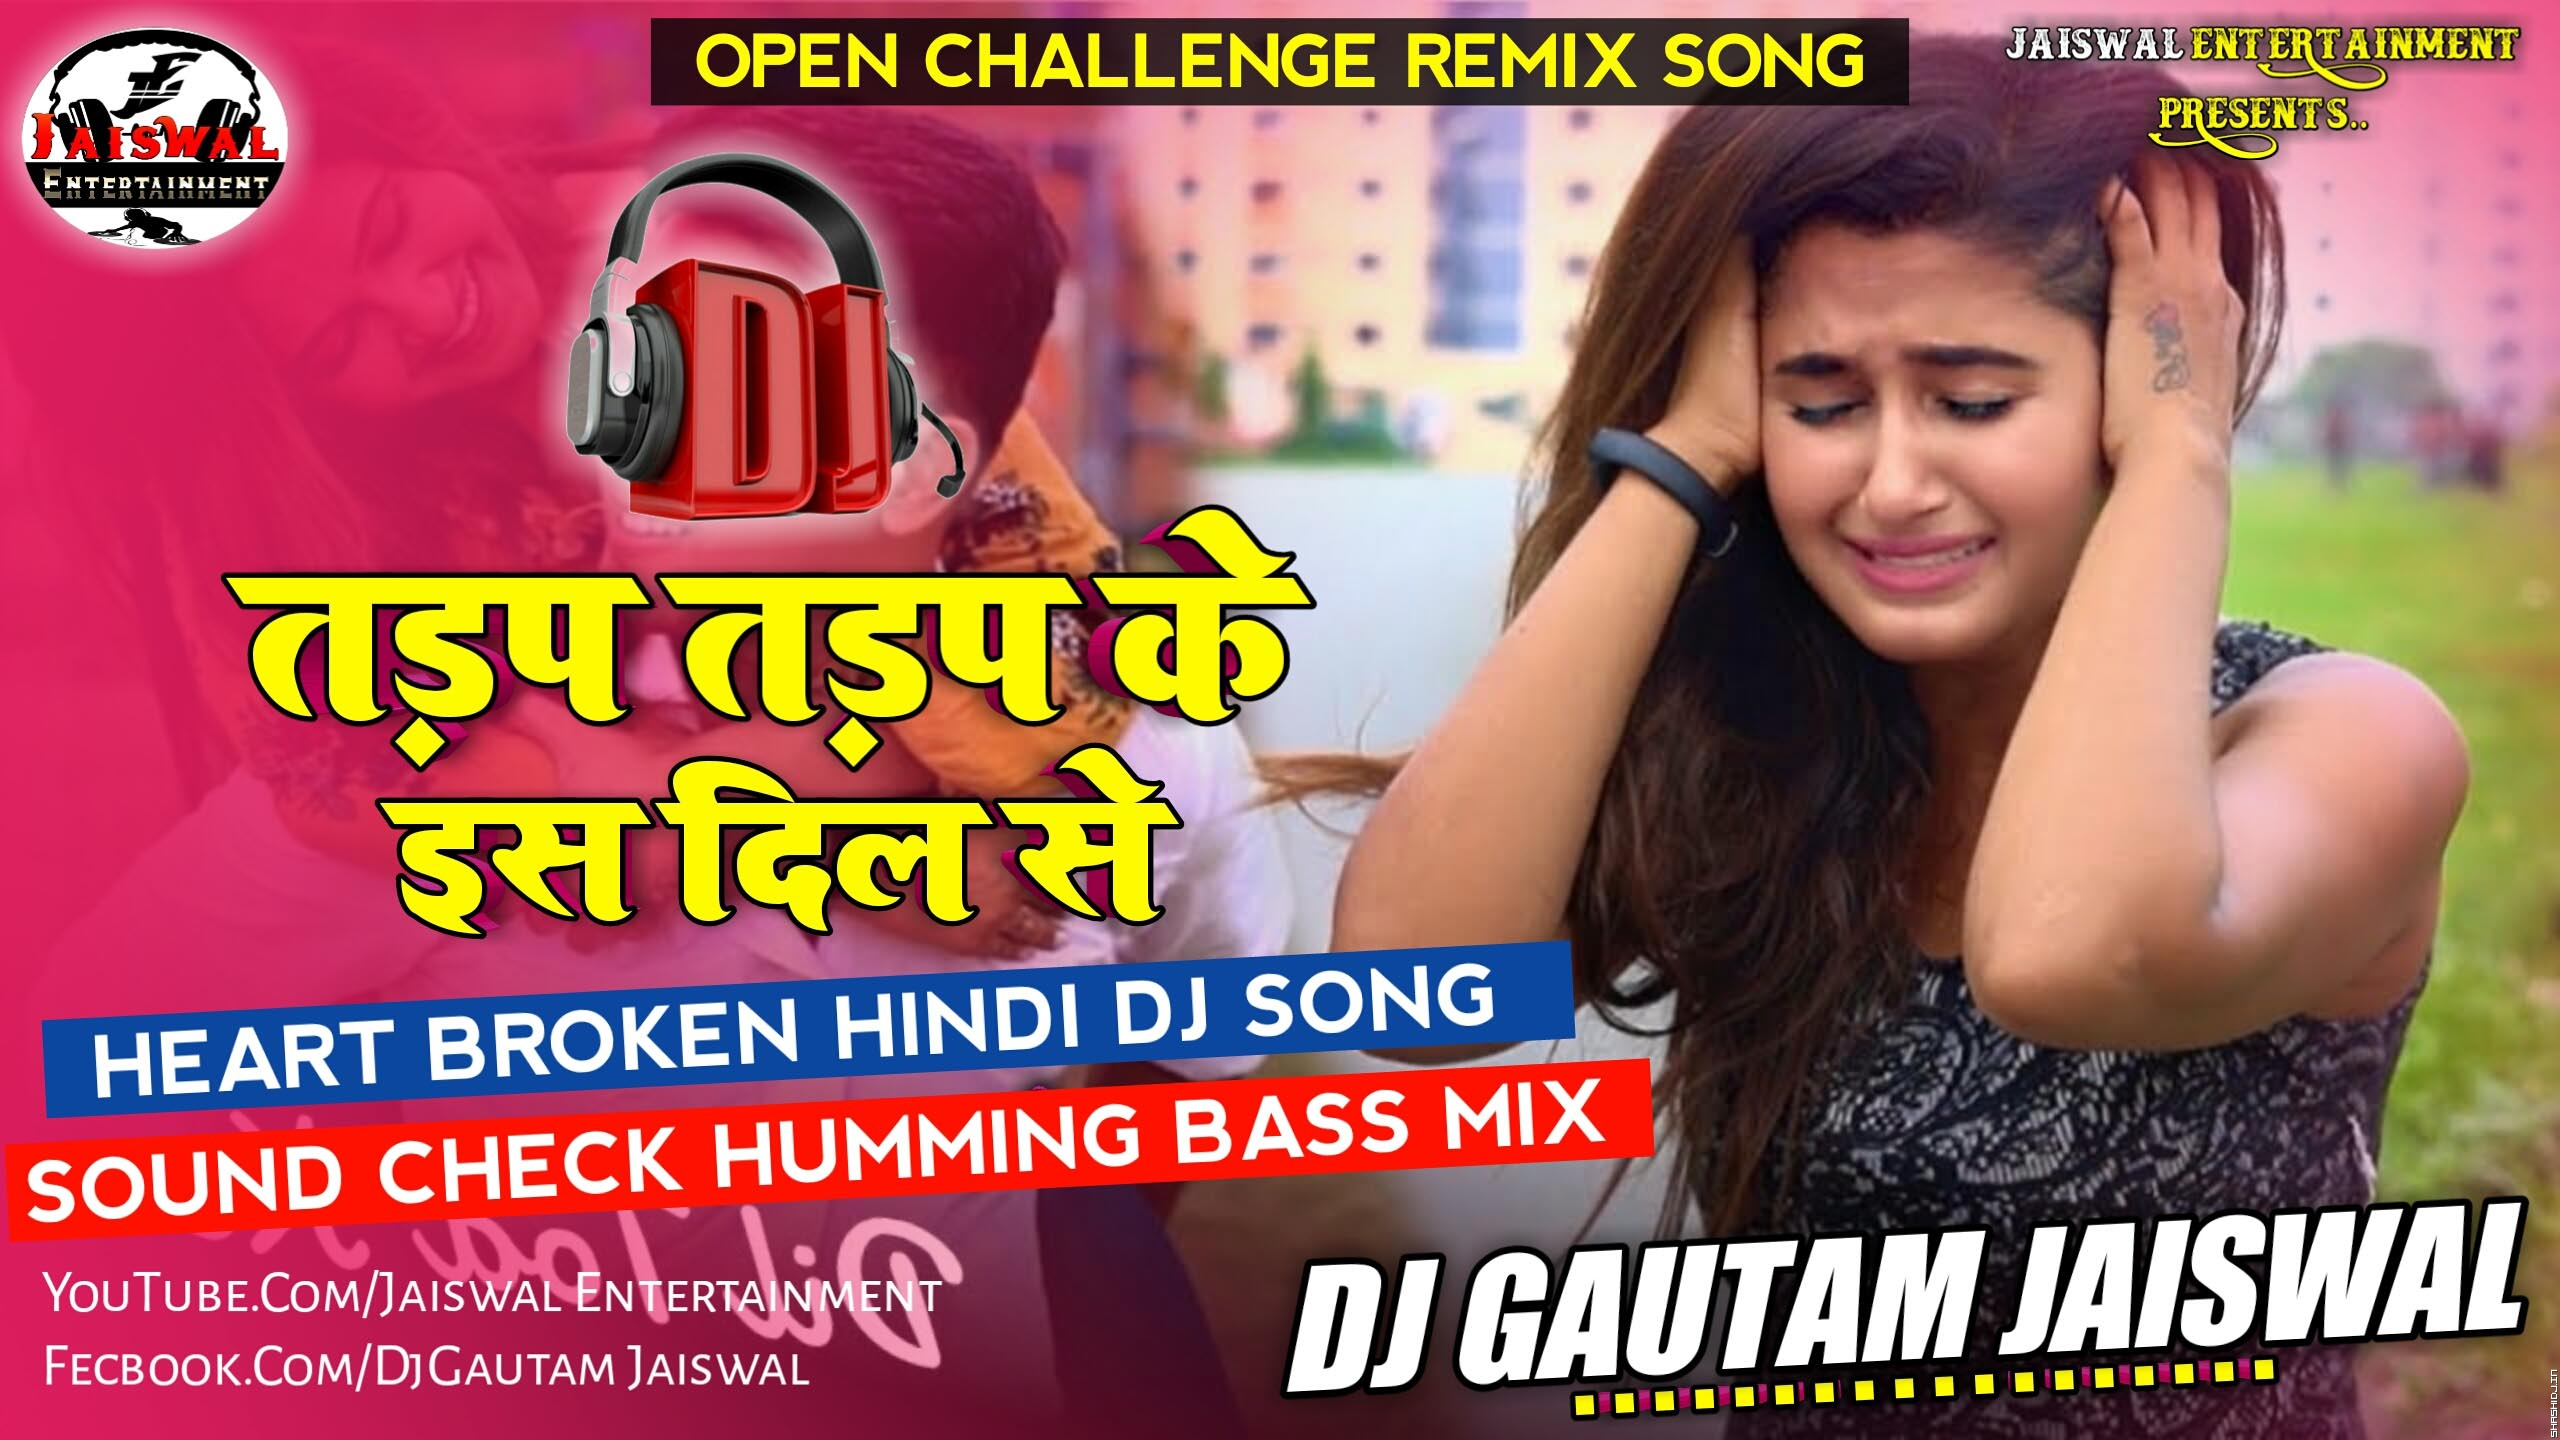 Tadap Tadap Ke Is Dil Se (Sound Check Humming Bass Mix) DjGautam Jaiswal.mp3